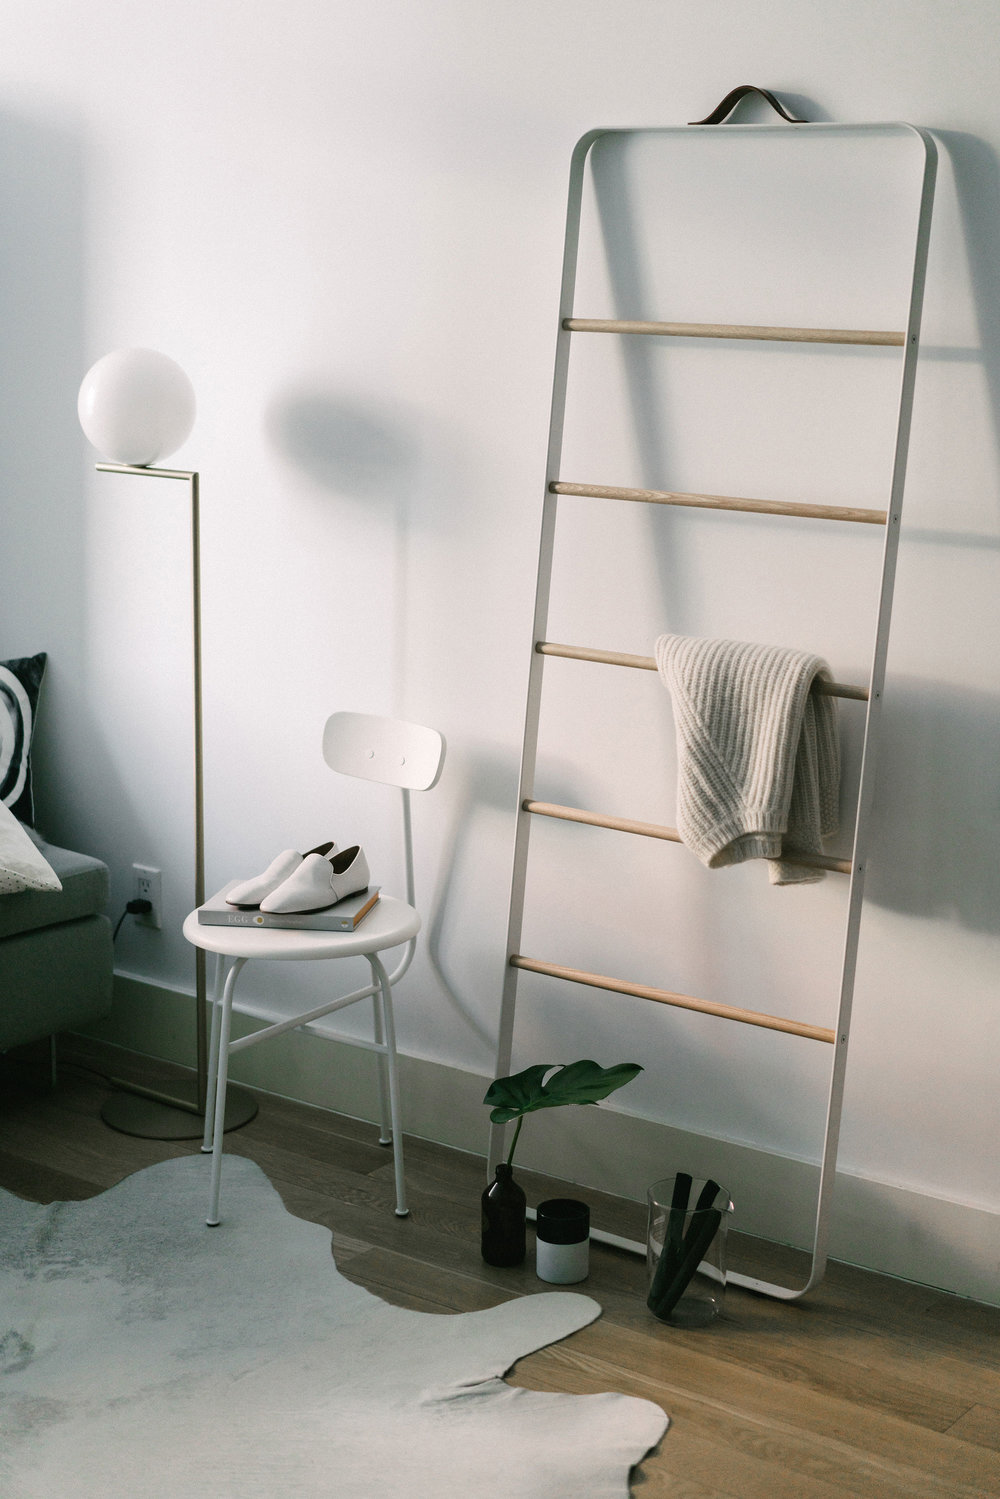 At home – Flos Lamp, Menu Chair and Ladder, The Row Shoes, Nili Lotan Sweater